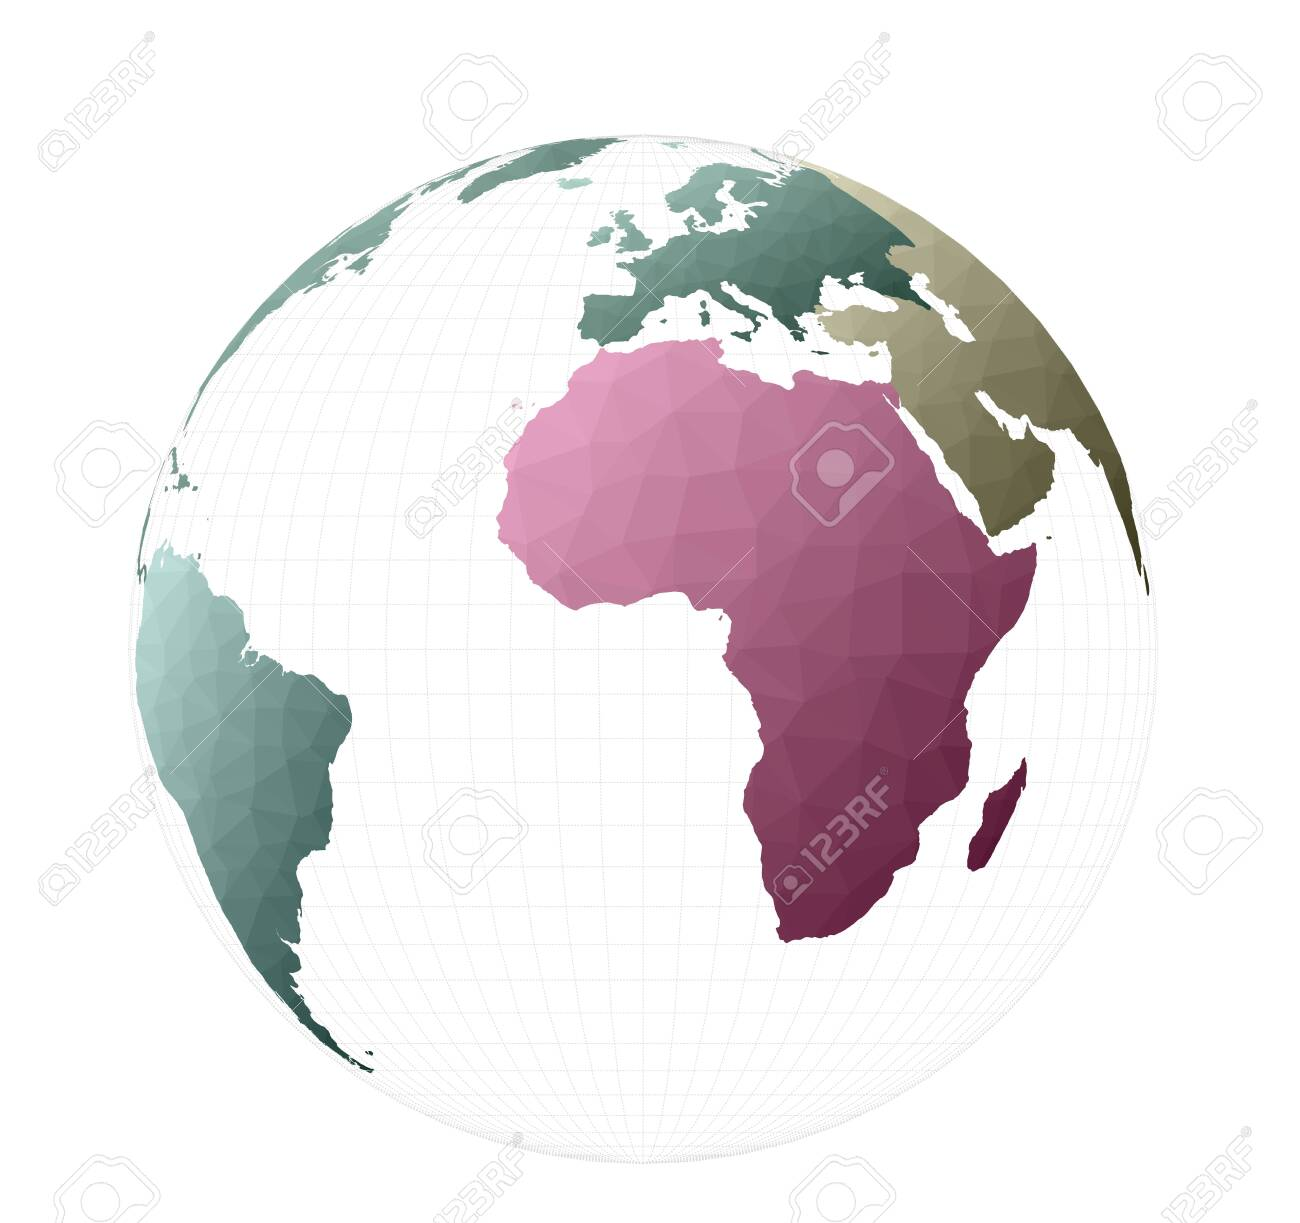 World map illustration. Orthographic projection. Interesting.. on model of map, set of map, photography of map, drawing of map, map of map, animation of map, texture of map, element of map, depression of map, shape of map, scale of map, type of map, view of map, orientation of map,